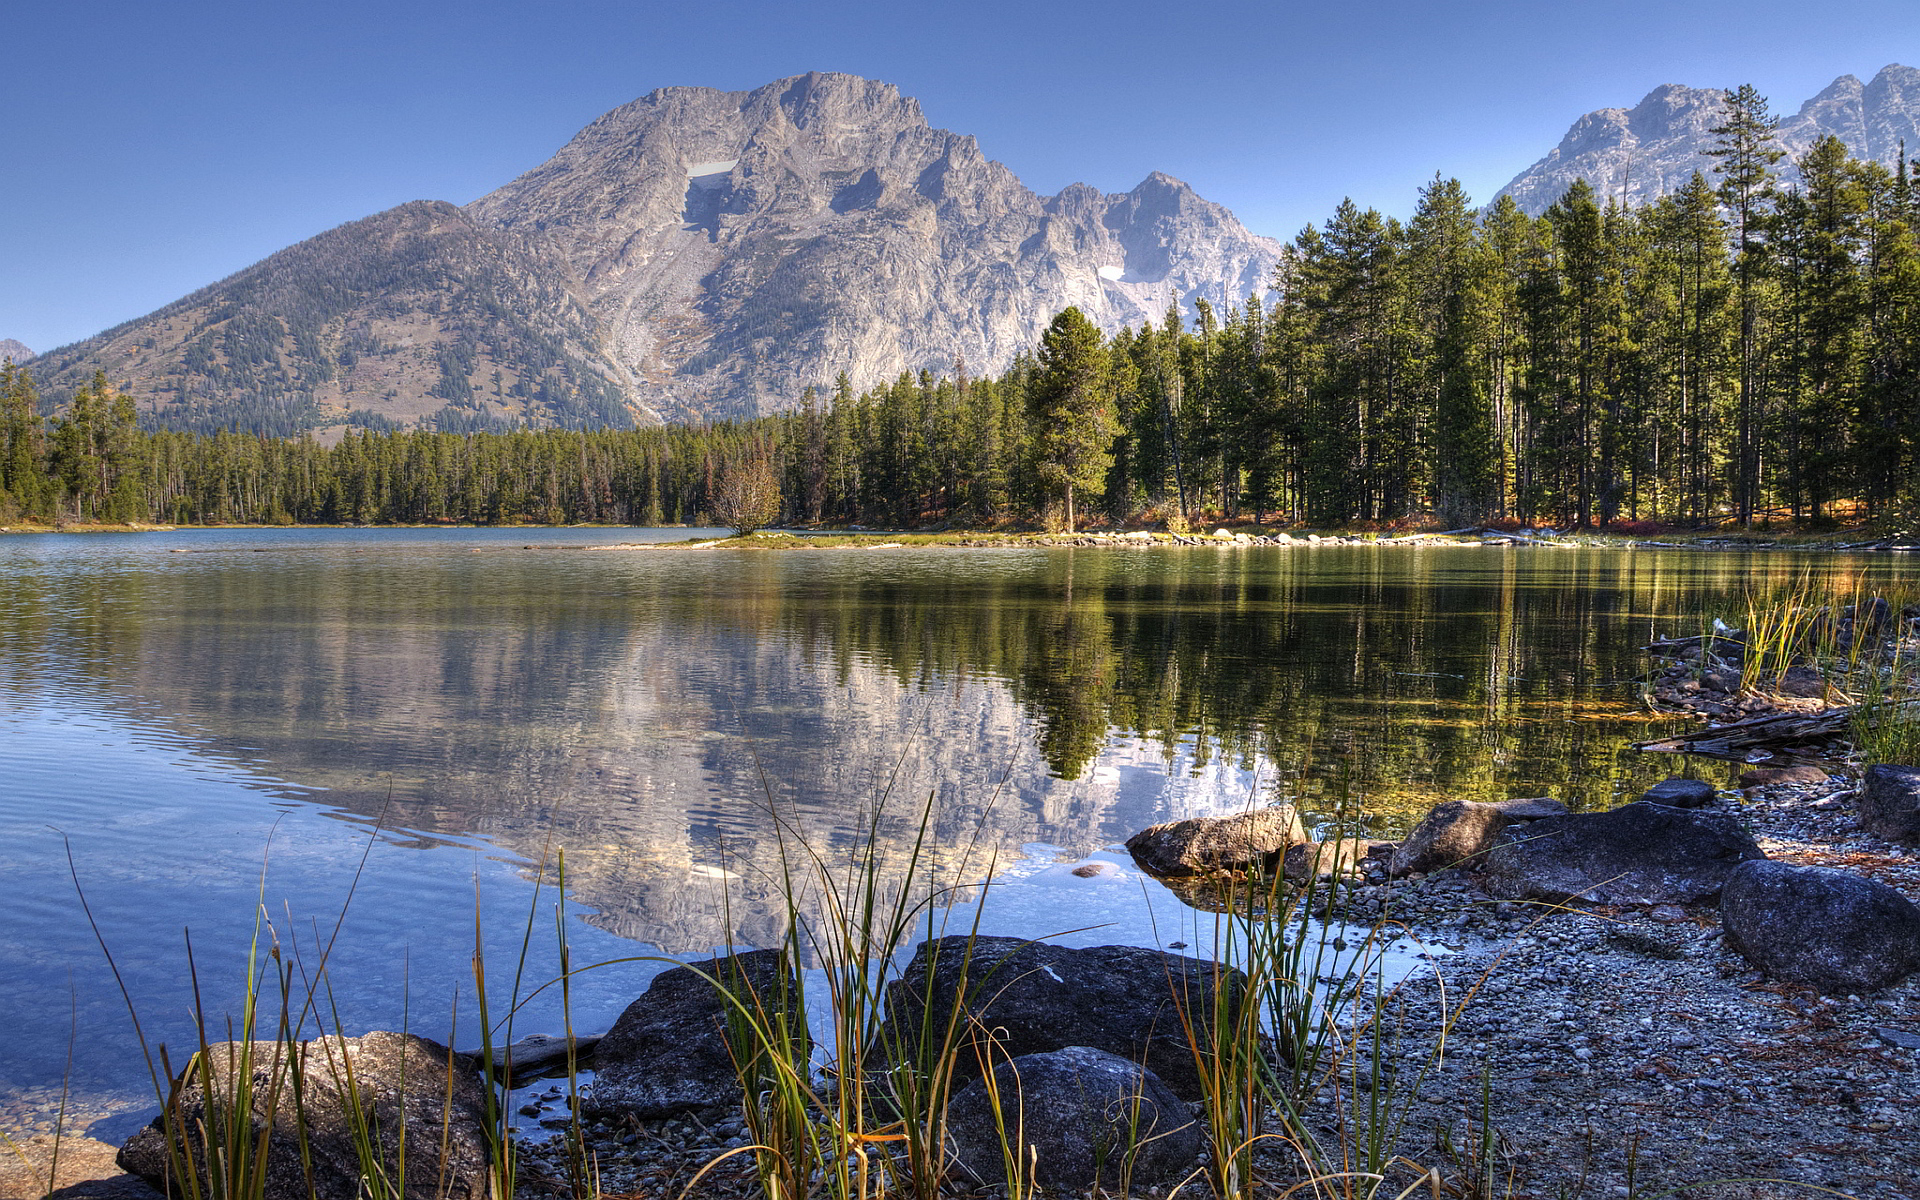 Lake mountains scenery